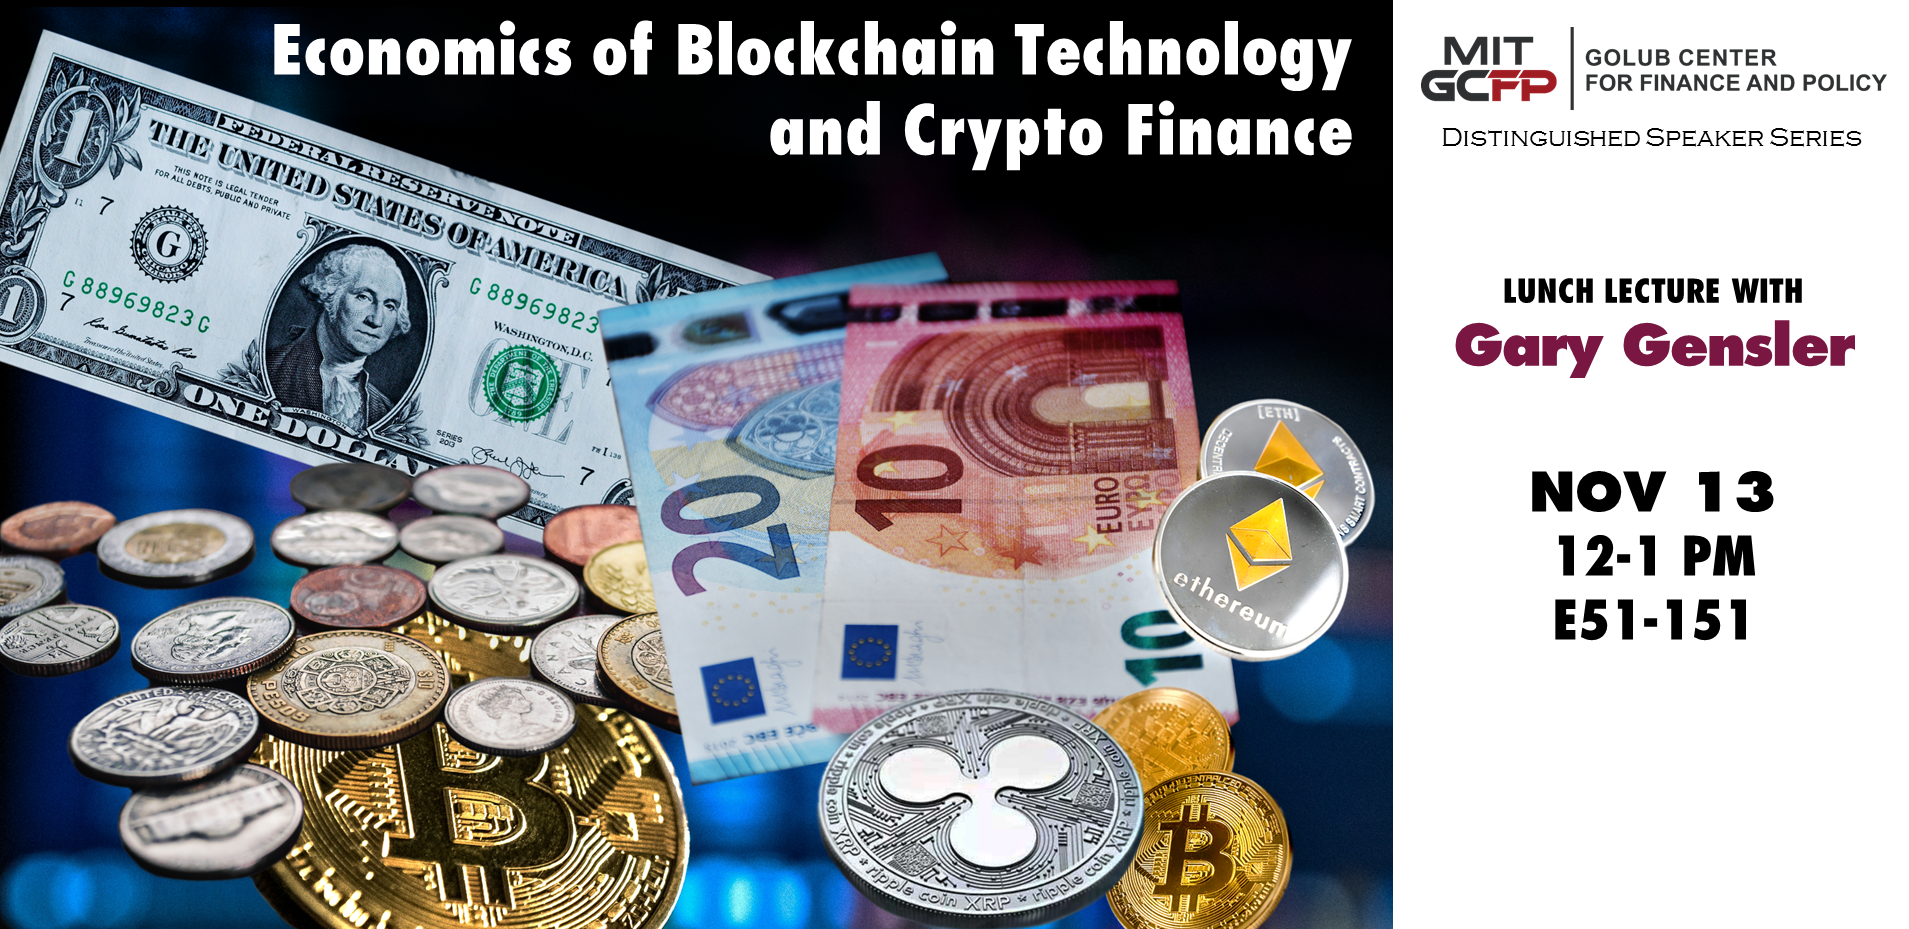 Economics of Blockchain Technology and Crypto Finance (stream link and slides available)